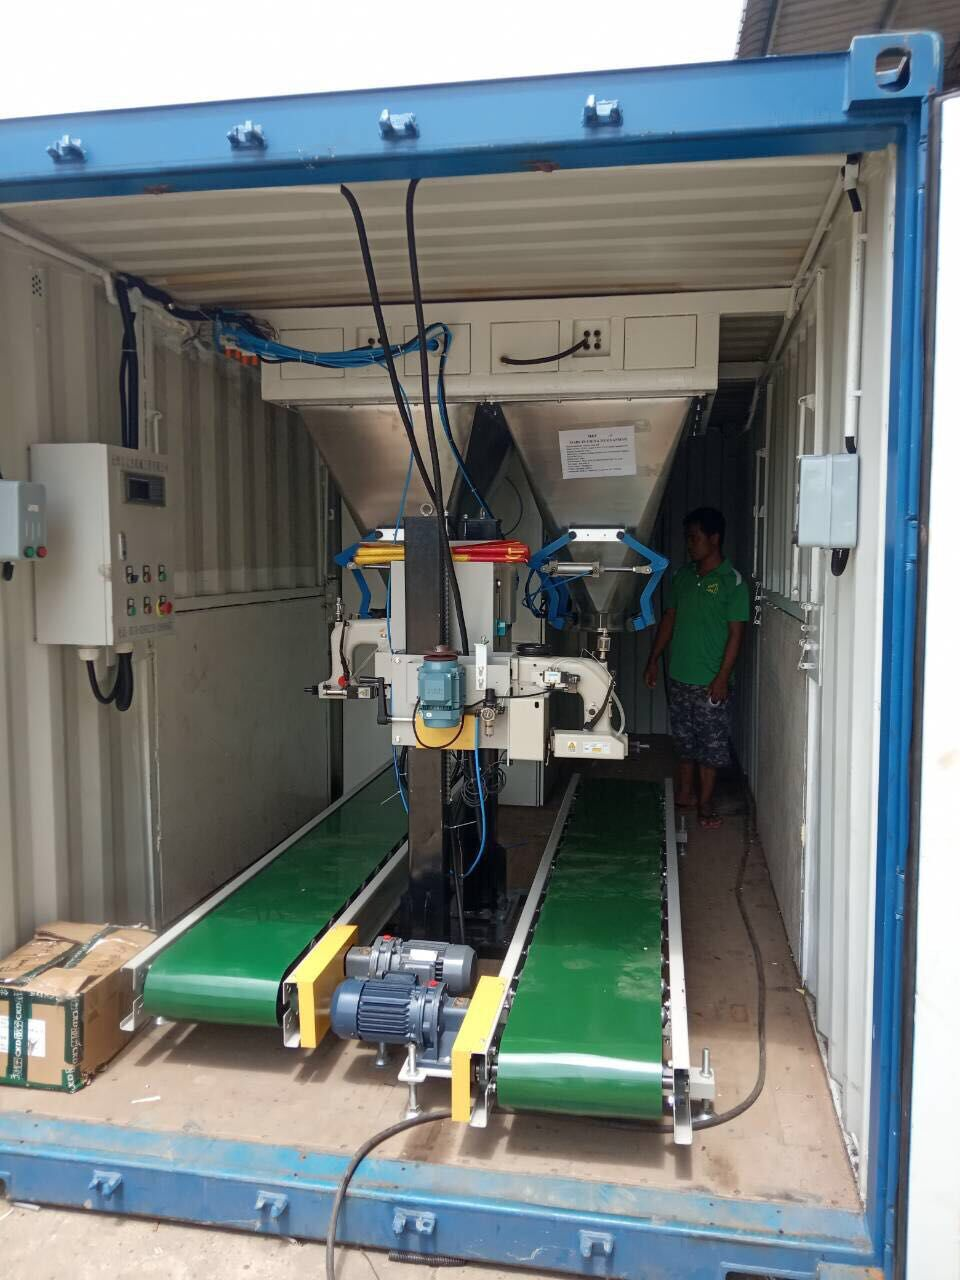 Containerised Bagging System, automatic packaging equipment manufacturer, Fully Automatic Packing Palletizing Line, Fully Automatic Packing & Palletizing Line